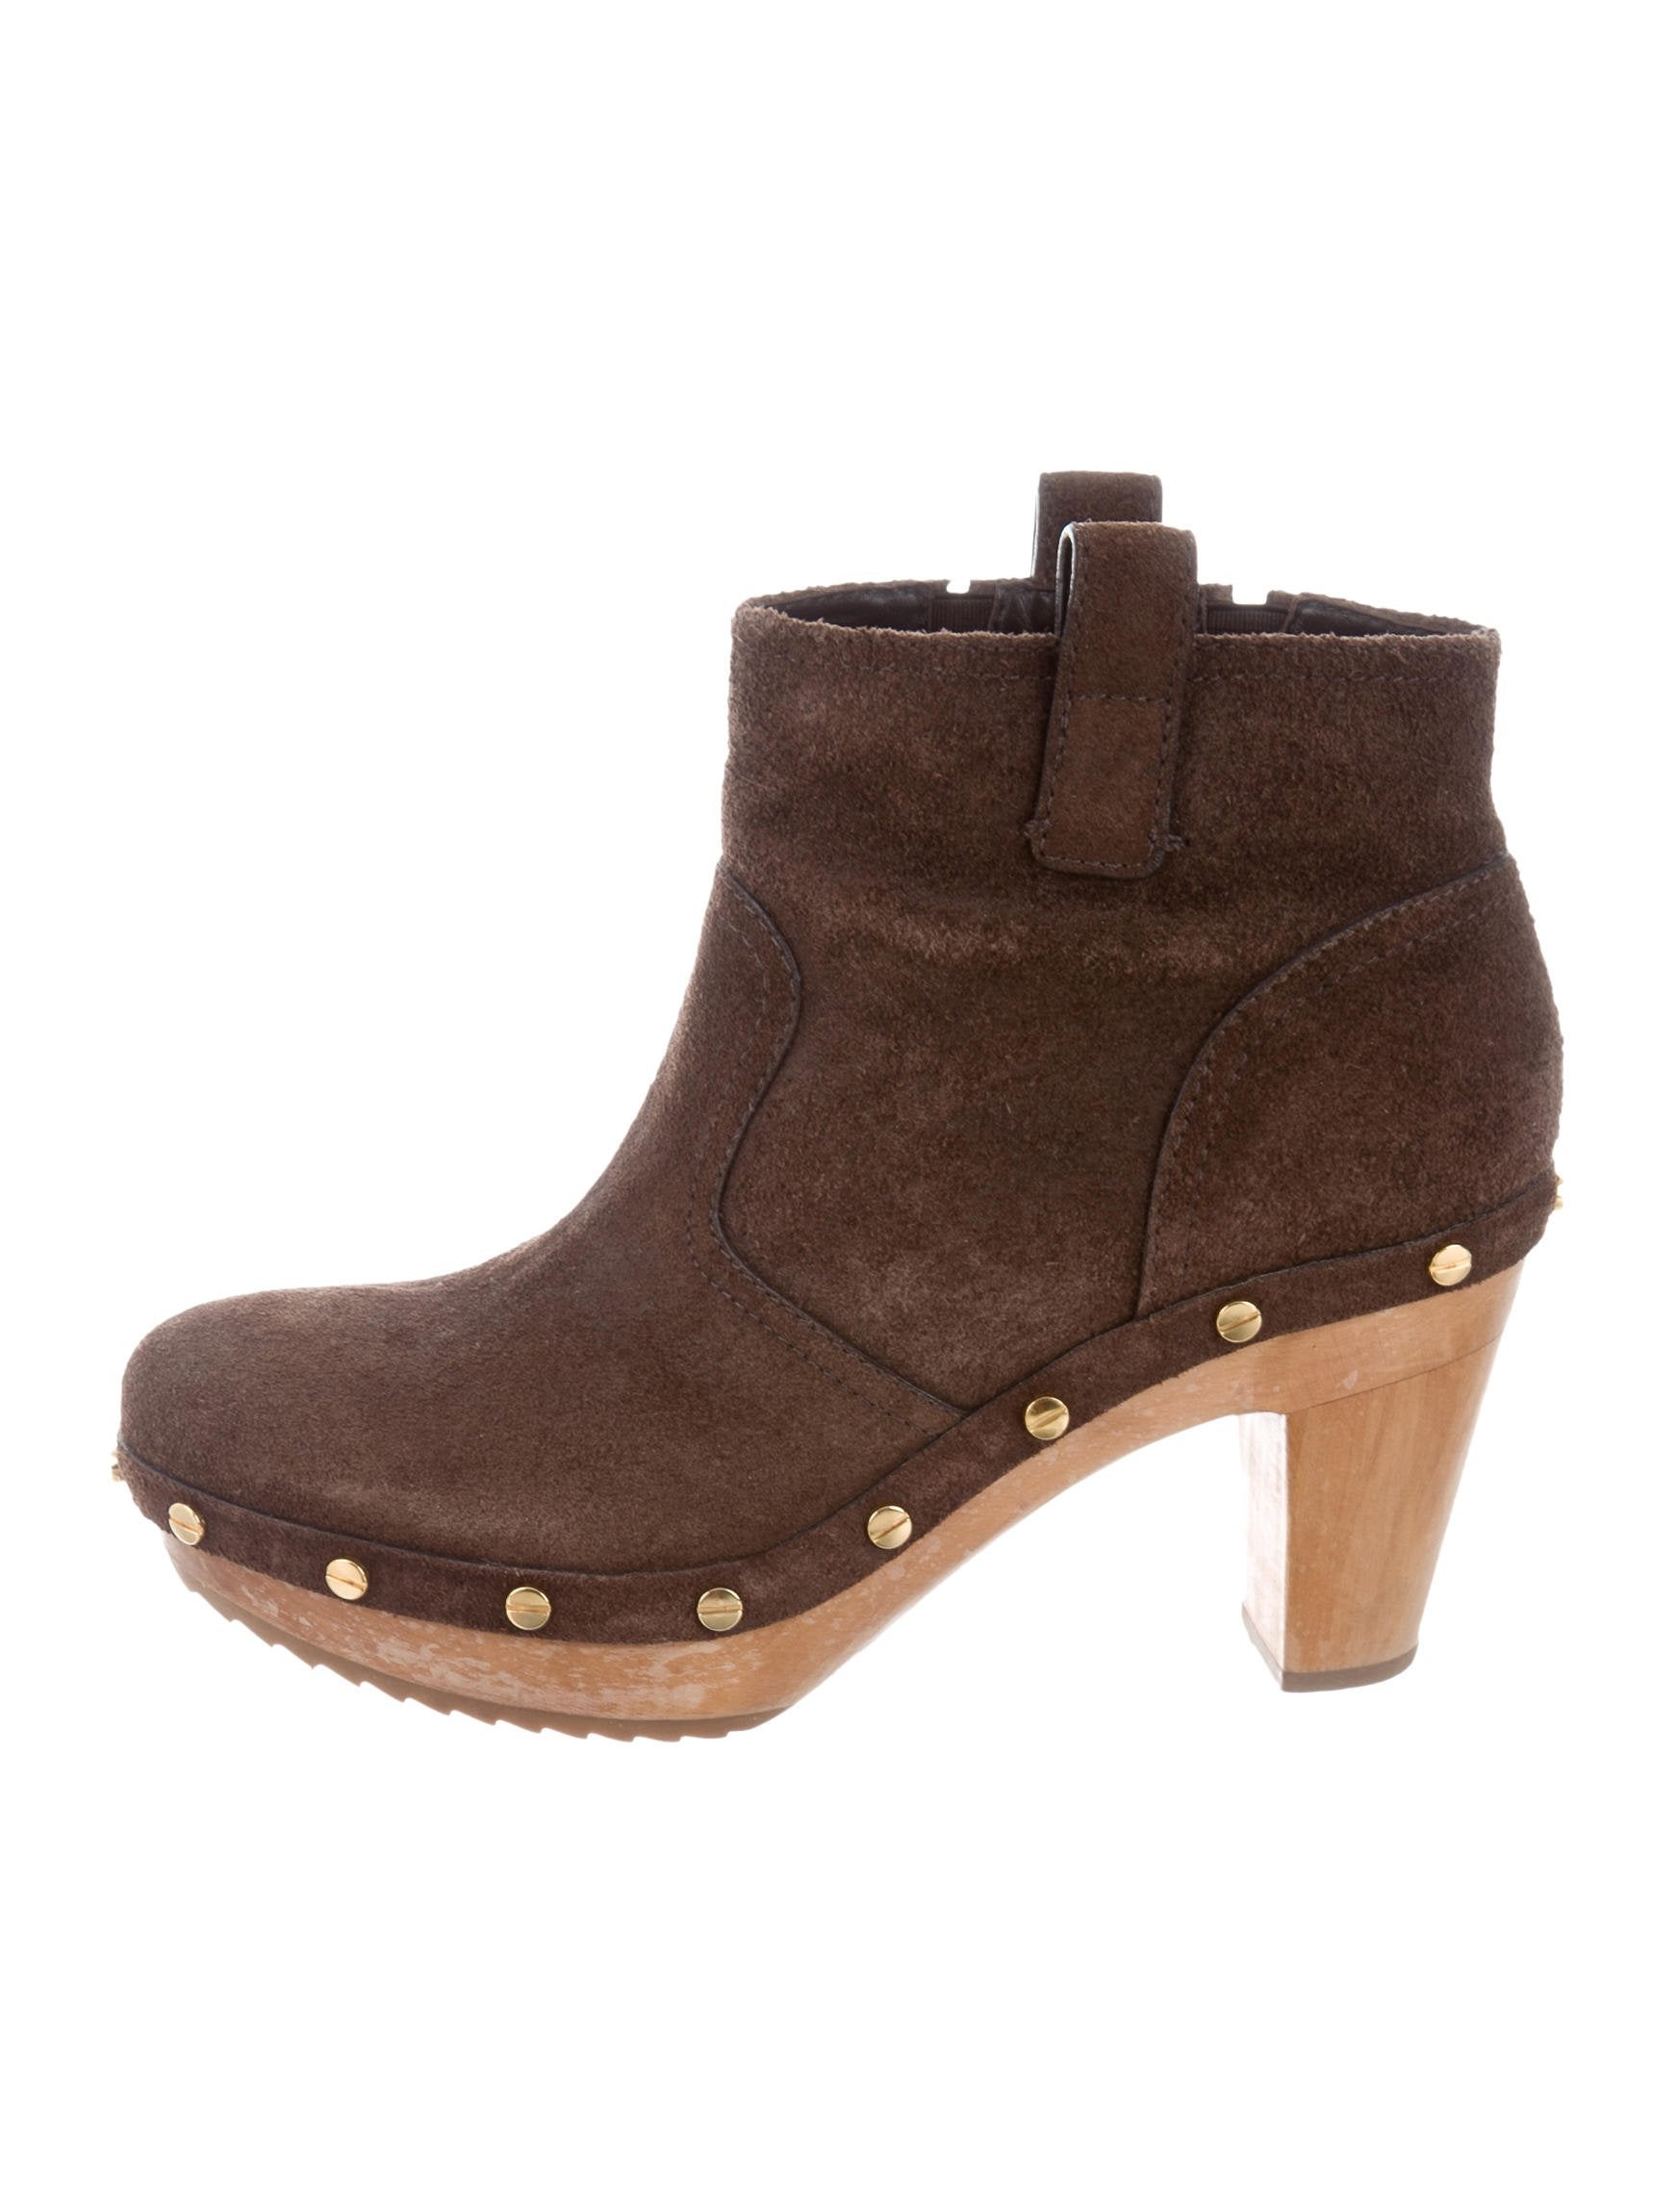 Tory Burch Ginvera Platform Booties from china free shipping low price buy cheap find great manchester great sale for sale HFWvINl